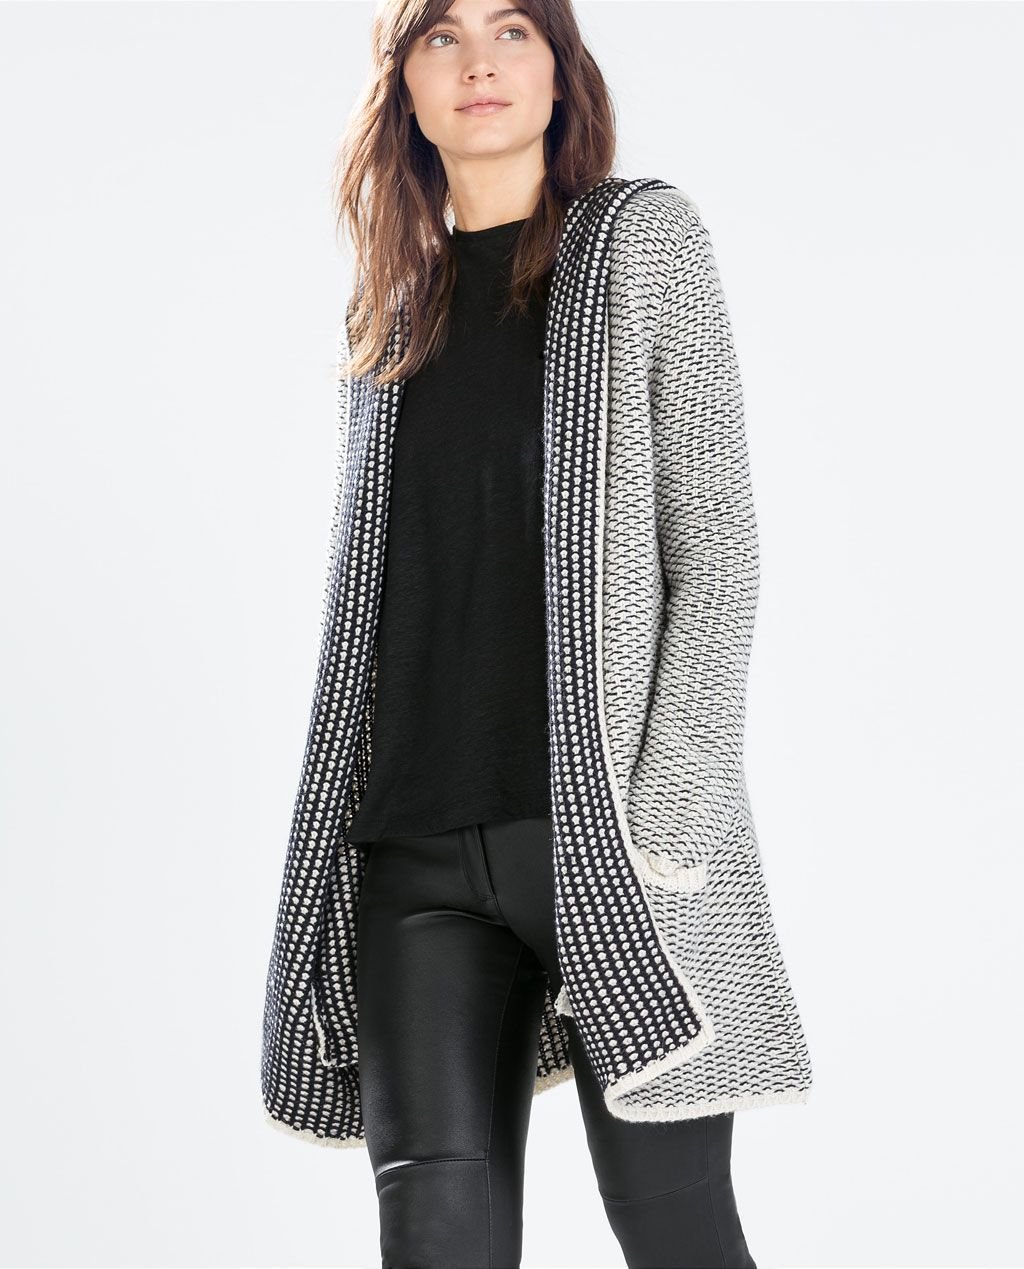 dc1035b01b5 Image 2 of KNIT HOODED CARDIGAN from Zara